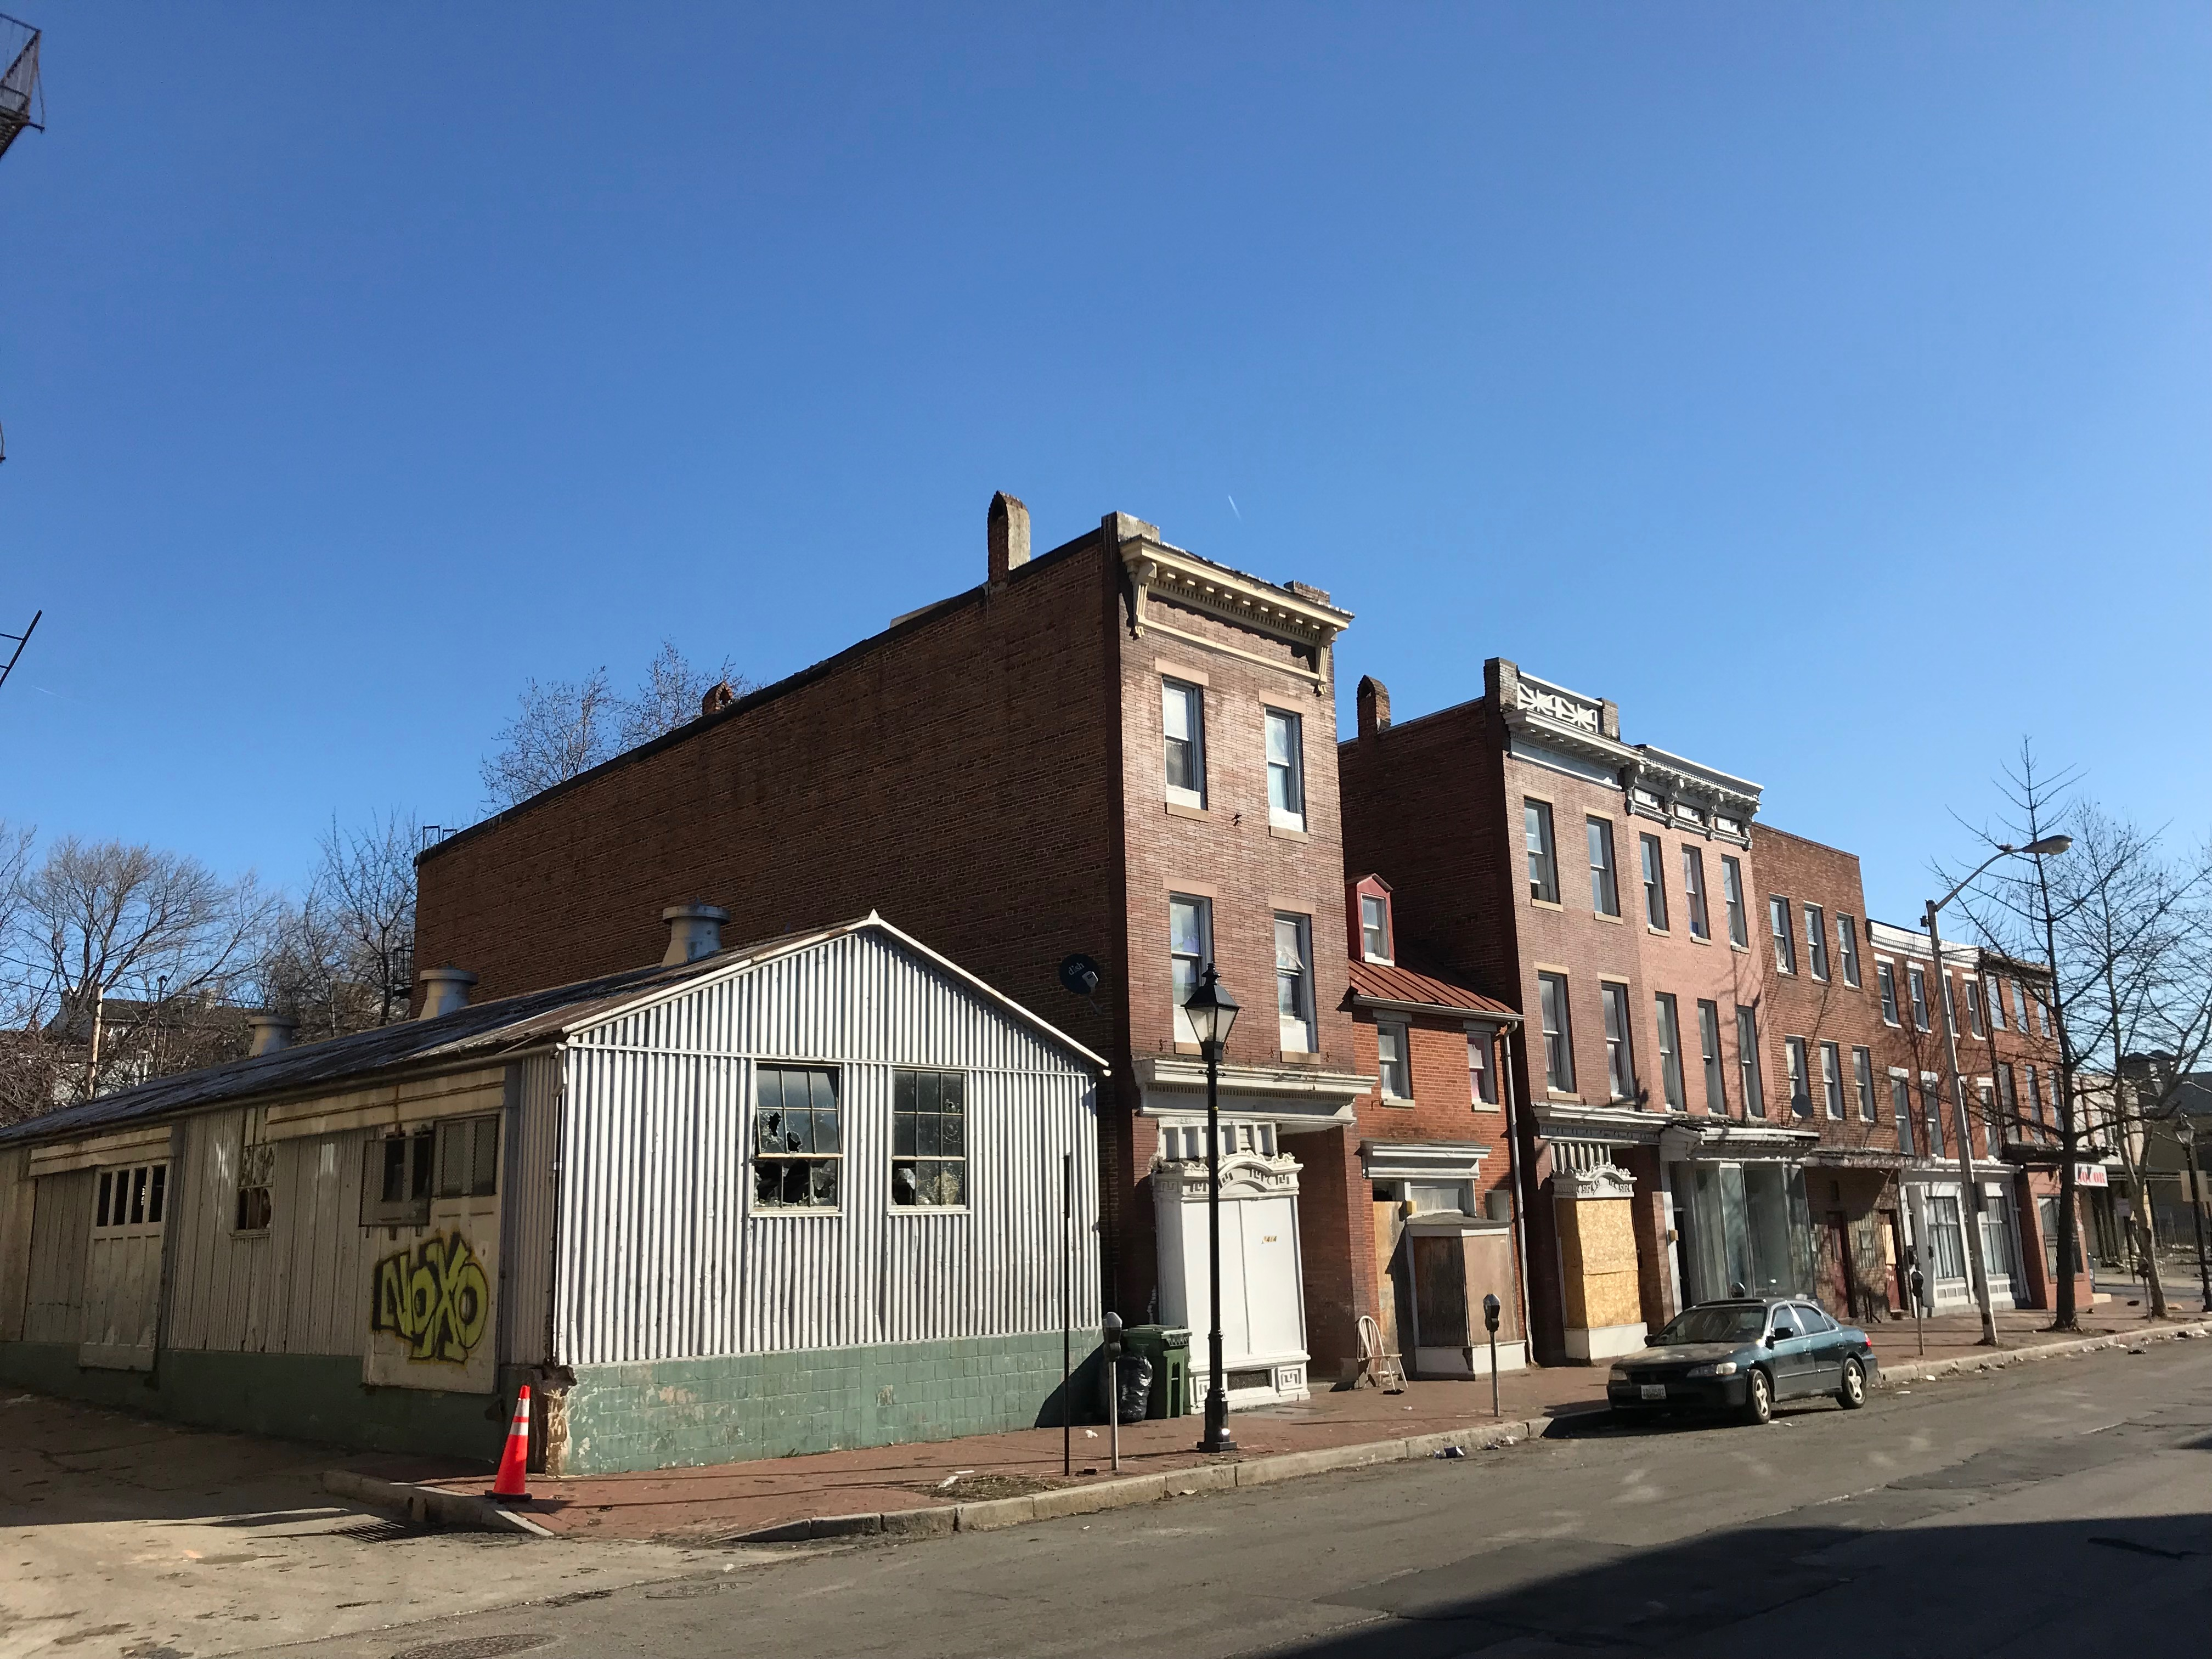 Vacant commercial buildings, 1400 block of w. baltimore street, baltimore, md 21223 photo